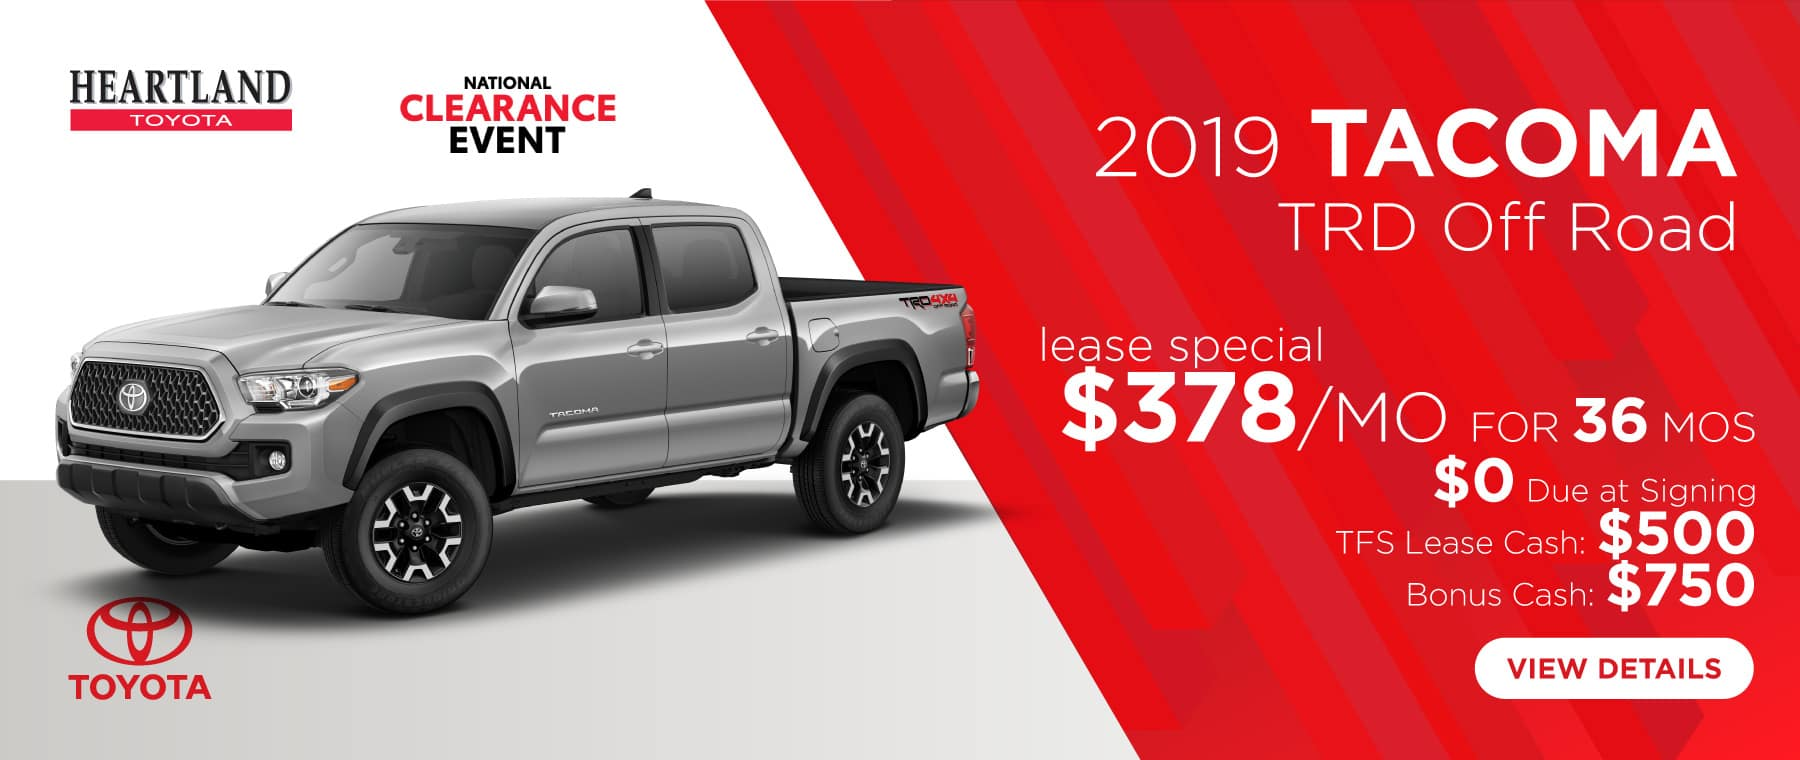 2019 Toyota Tacoma TRD Off Road $378/mo. For 36 months * $0 Due at Signing  TFS Lease Cash: $500 Bonus Cash: $750   *Offer valid on 2019 Toyota Tacoma TRD Off Road, excludes Pro (7544). $378 per mo. for 36 months. Lease with $0 due at signing; includes a $695 acquisition fee. Valid on VIN: 3TMCZ5AN1KM261888, 3TMCZ5AN3KM265585, 3TMCZ5AN2KM268834. MSRP $41,520. Deal #403734. Plus, TFS Lease Cash: $500. Bonus Cash: $750. Lease is through TFS. Subject to credit approval. No Security deposit required. Excludes taxes, title, and fees. 36 monthly payments required. Not all lessees will qualify for lowest payment through participating lender. Residency restrictions apply. Lessee responsible for mileage over 10,000 miles per year at $0.15/mile per year. Option to purchase at lease end. A negotiable dealer documentary service fee of up to $150 may be added to the sale price or capitalized cost. Offer expires 9/3/2019.